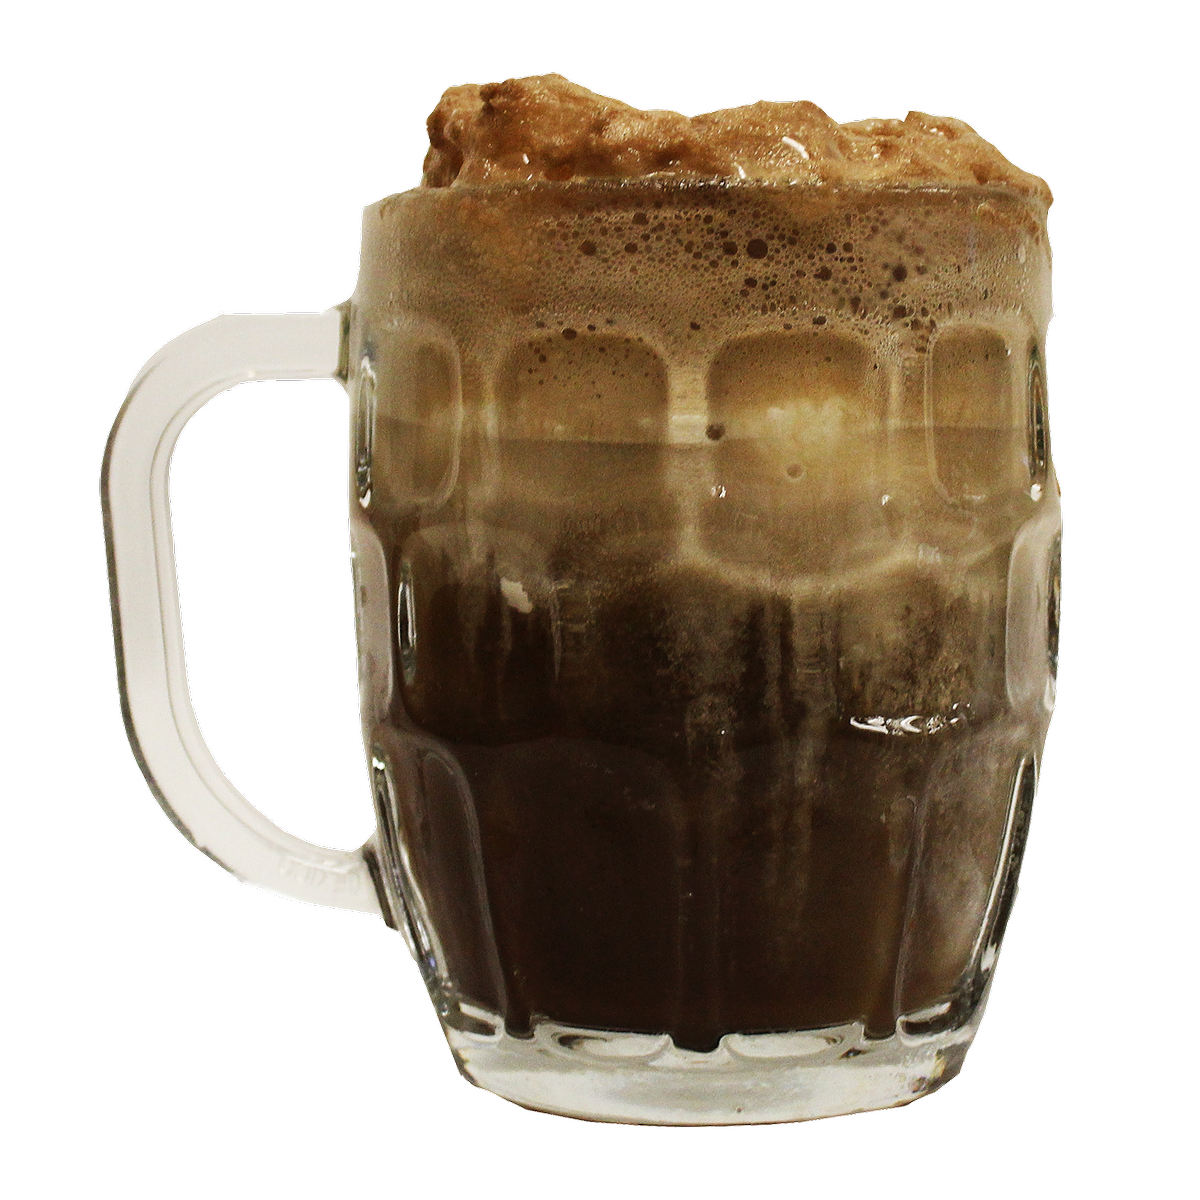 Stout or Porter Float